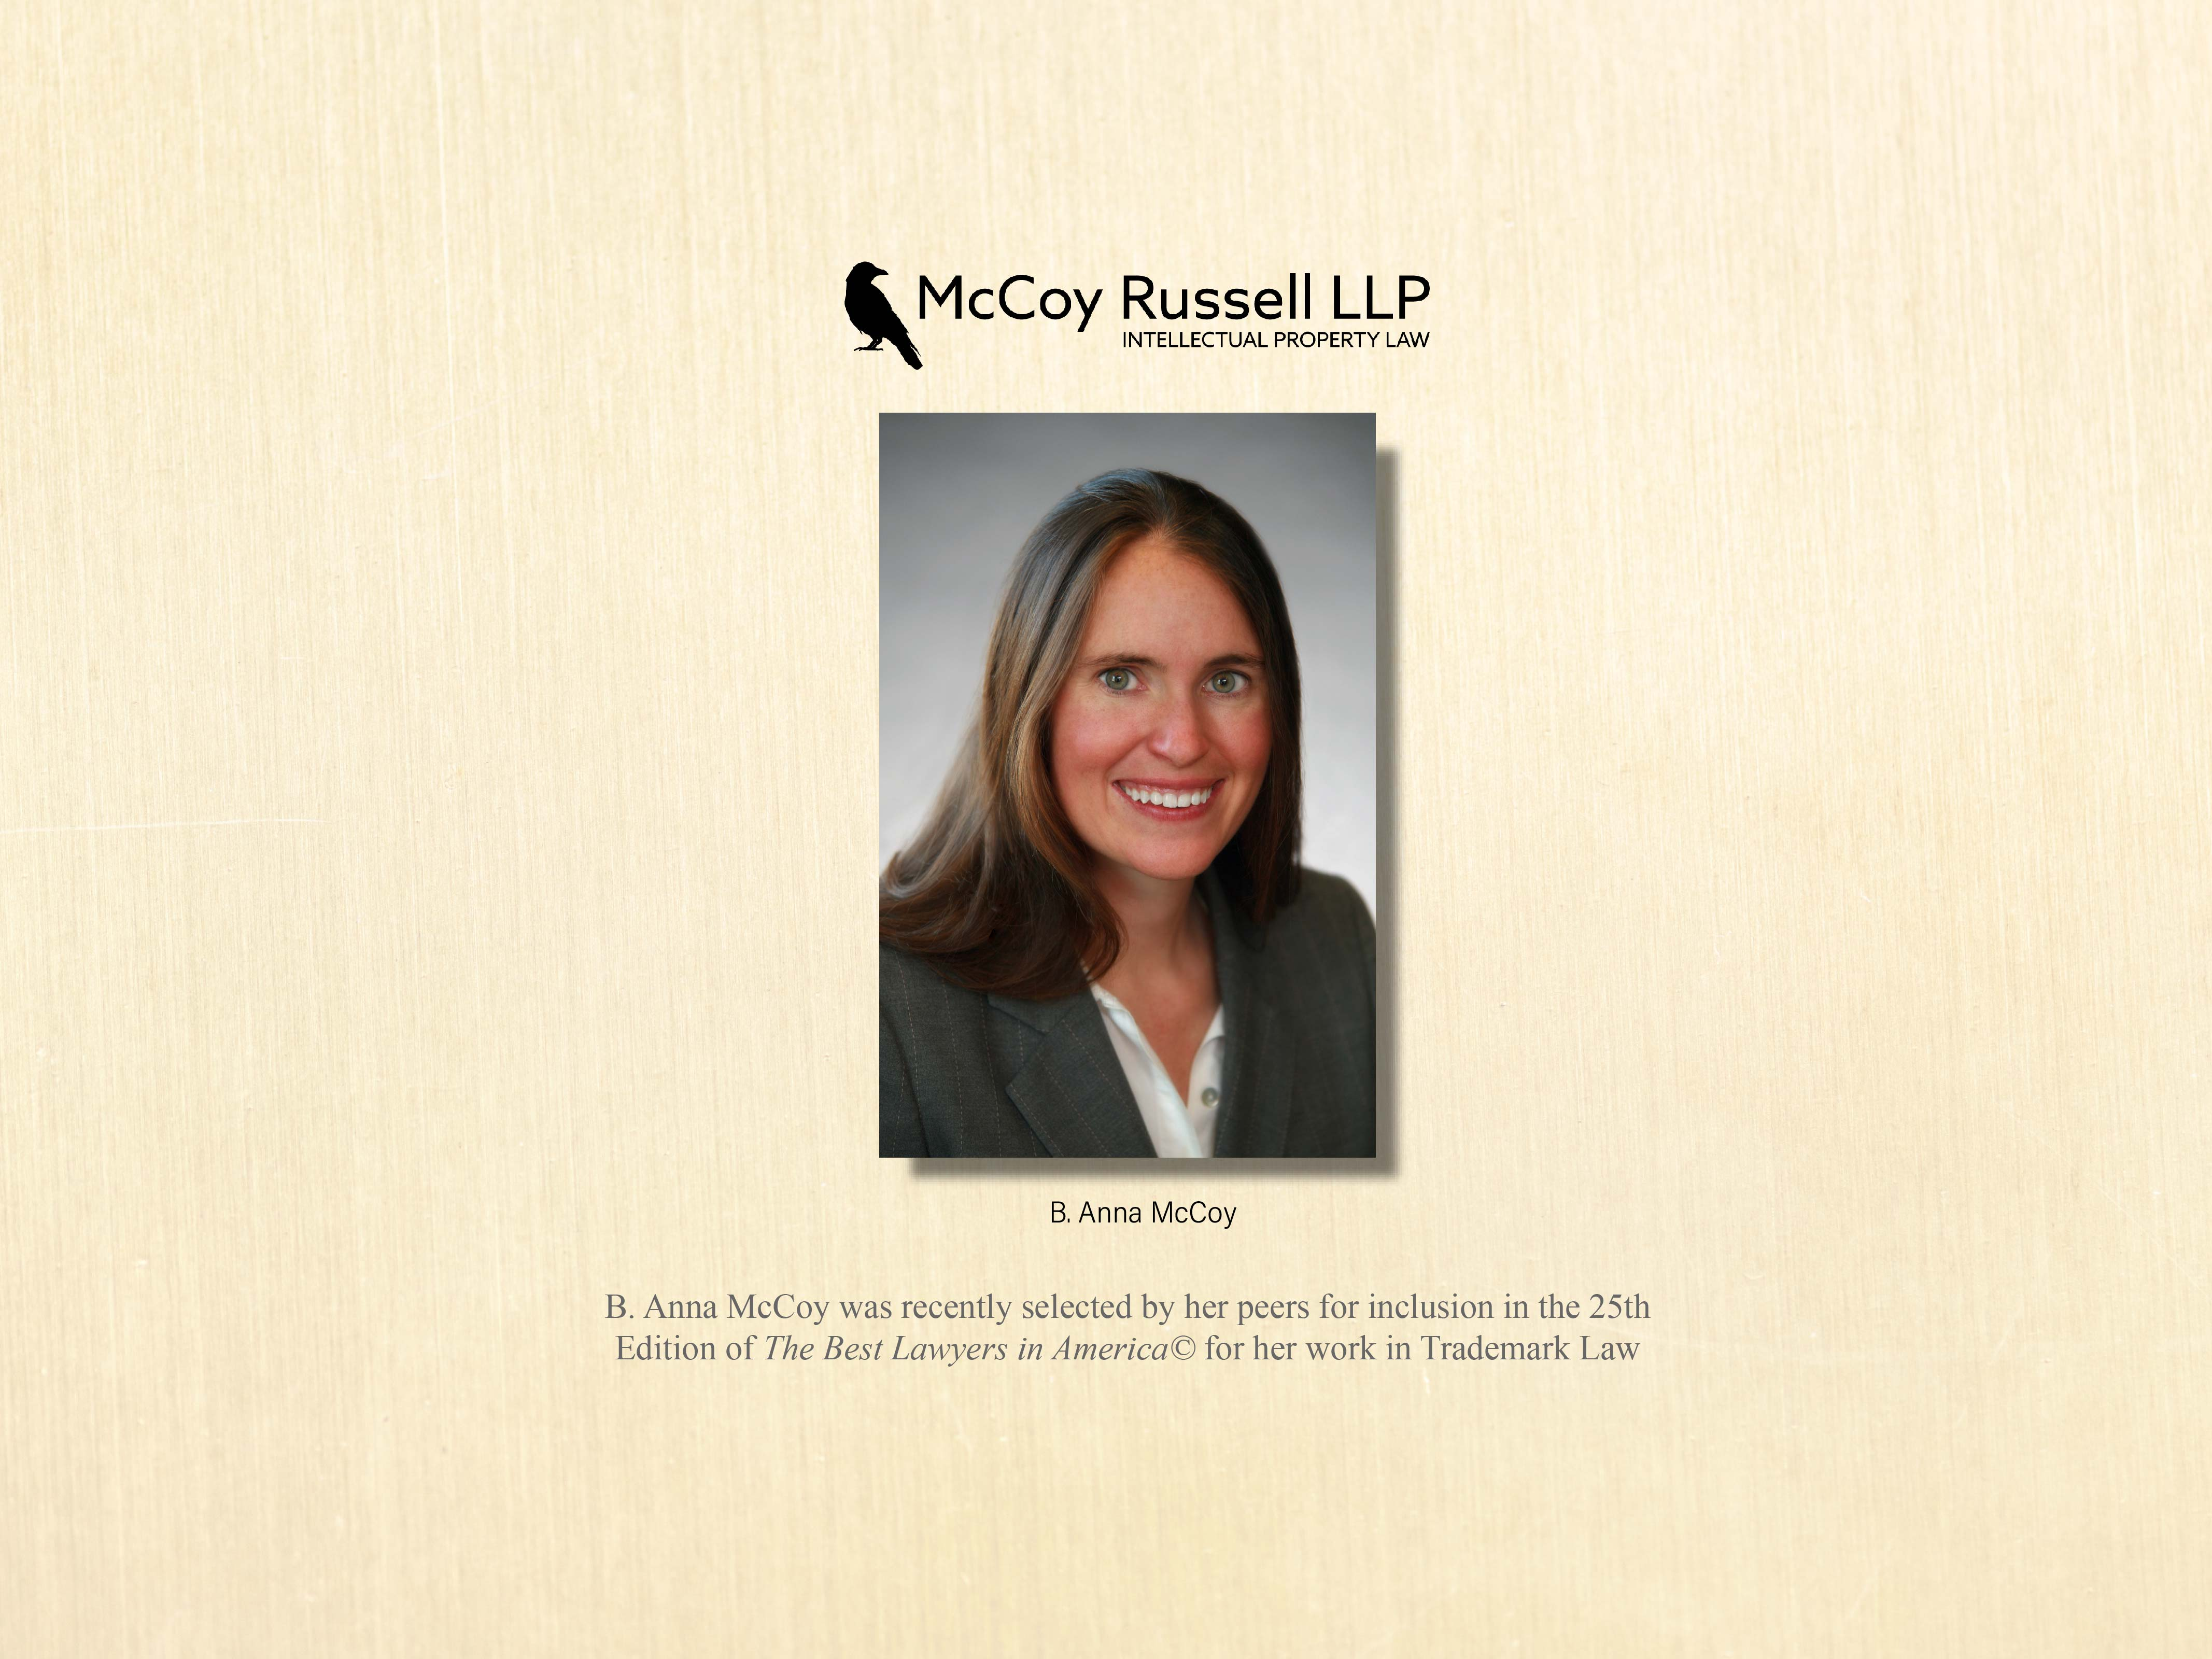 B. Anna McCoy in 2019 Edition of Best Lawyers